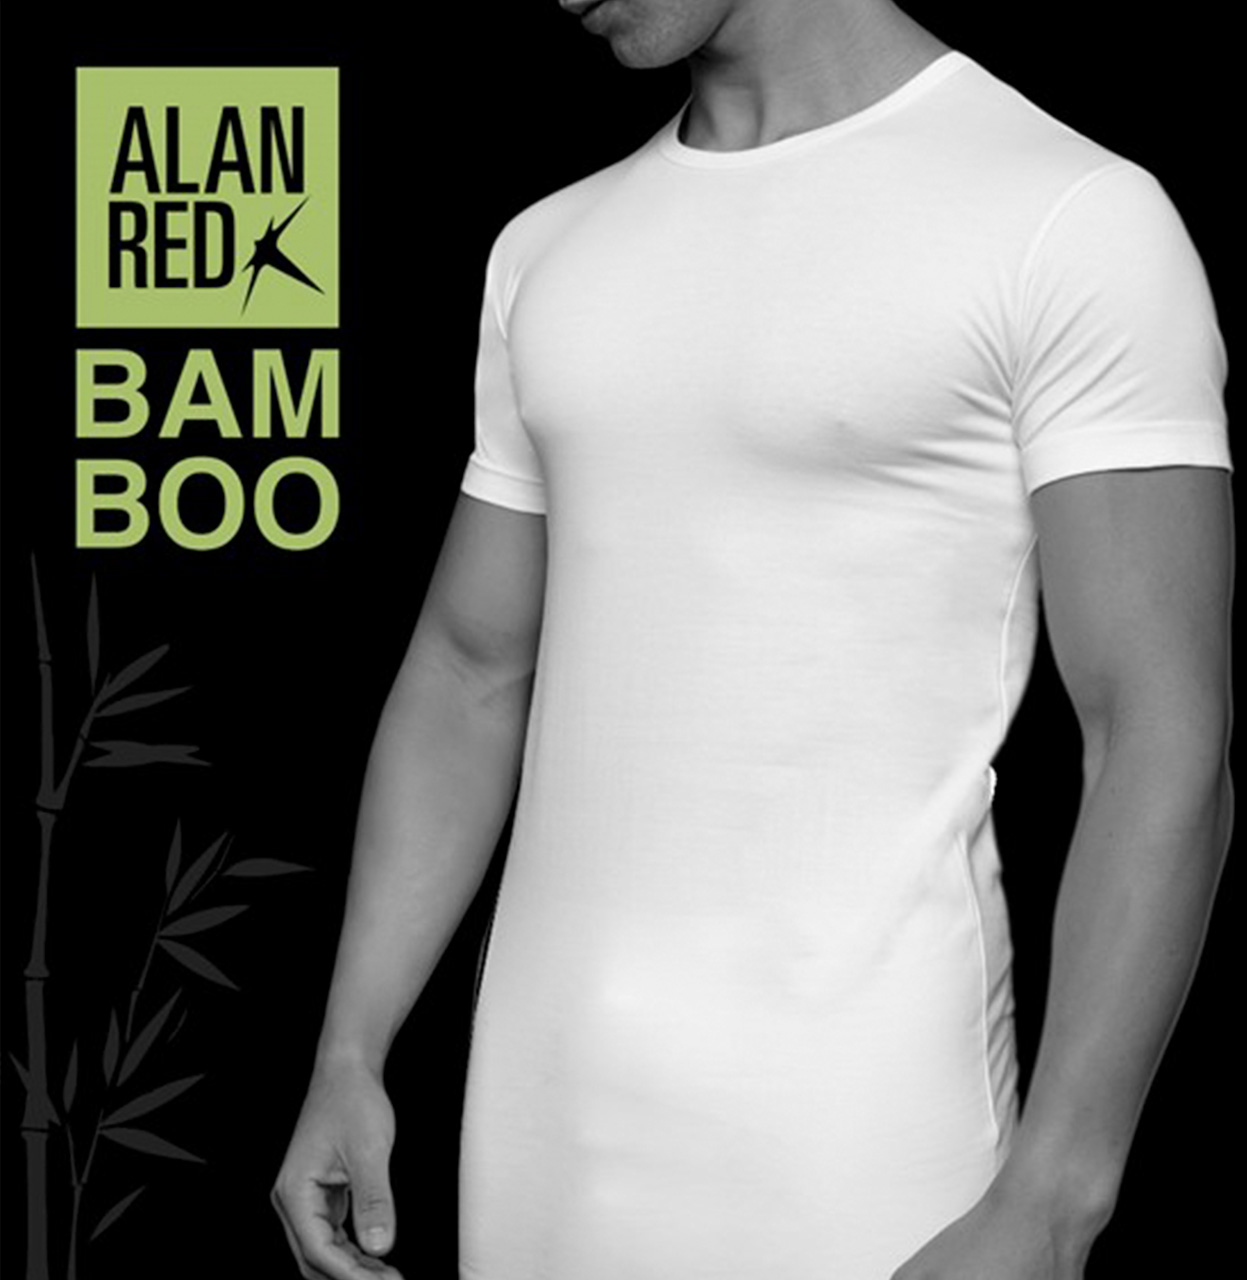 Alan Red T-shirt BILBAO white BILBAO wit Maat M